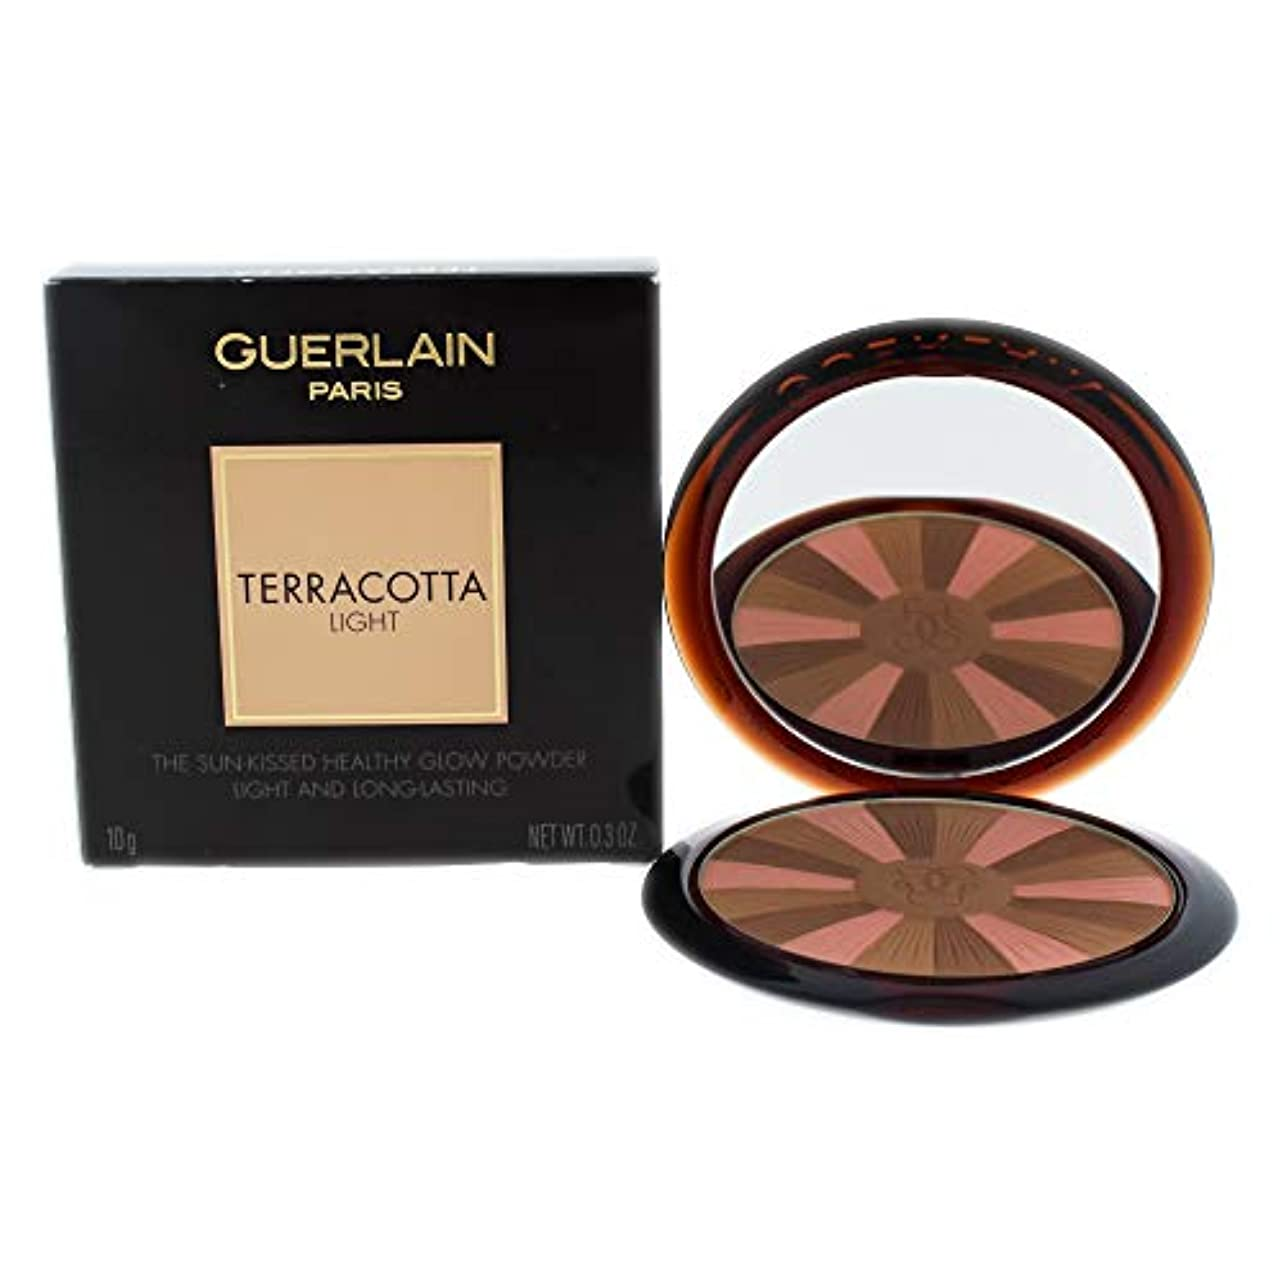 ガラス優越リサイクルするゲラン Terracotta Light The Sun Kissed Healthy Glow Powder - # 02 Natural Cool 10g/0.3oz並行輸入品